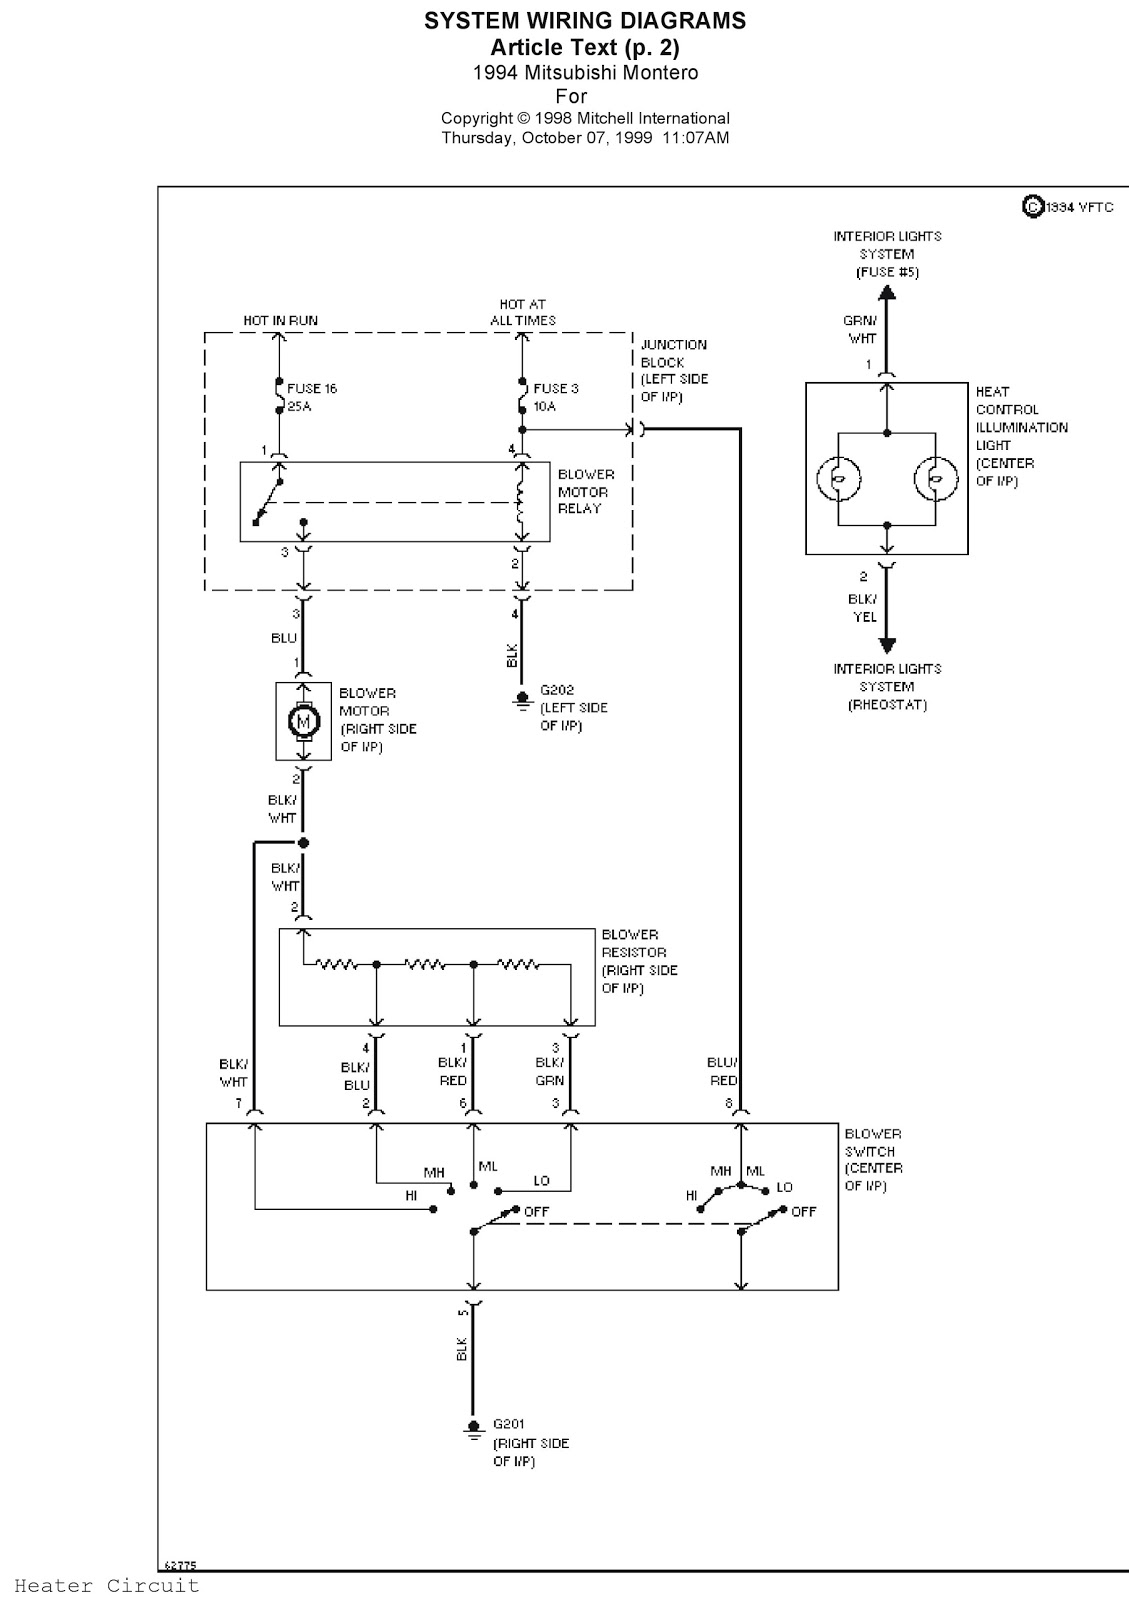 medium resolution of 2002 mitsubishi montero sport radio wiring diagram get 1992 mitsubishi montero wiring